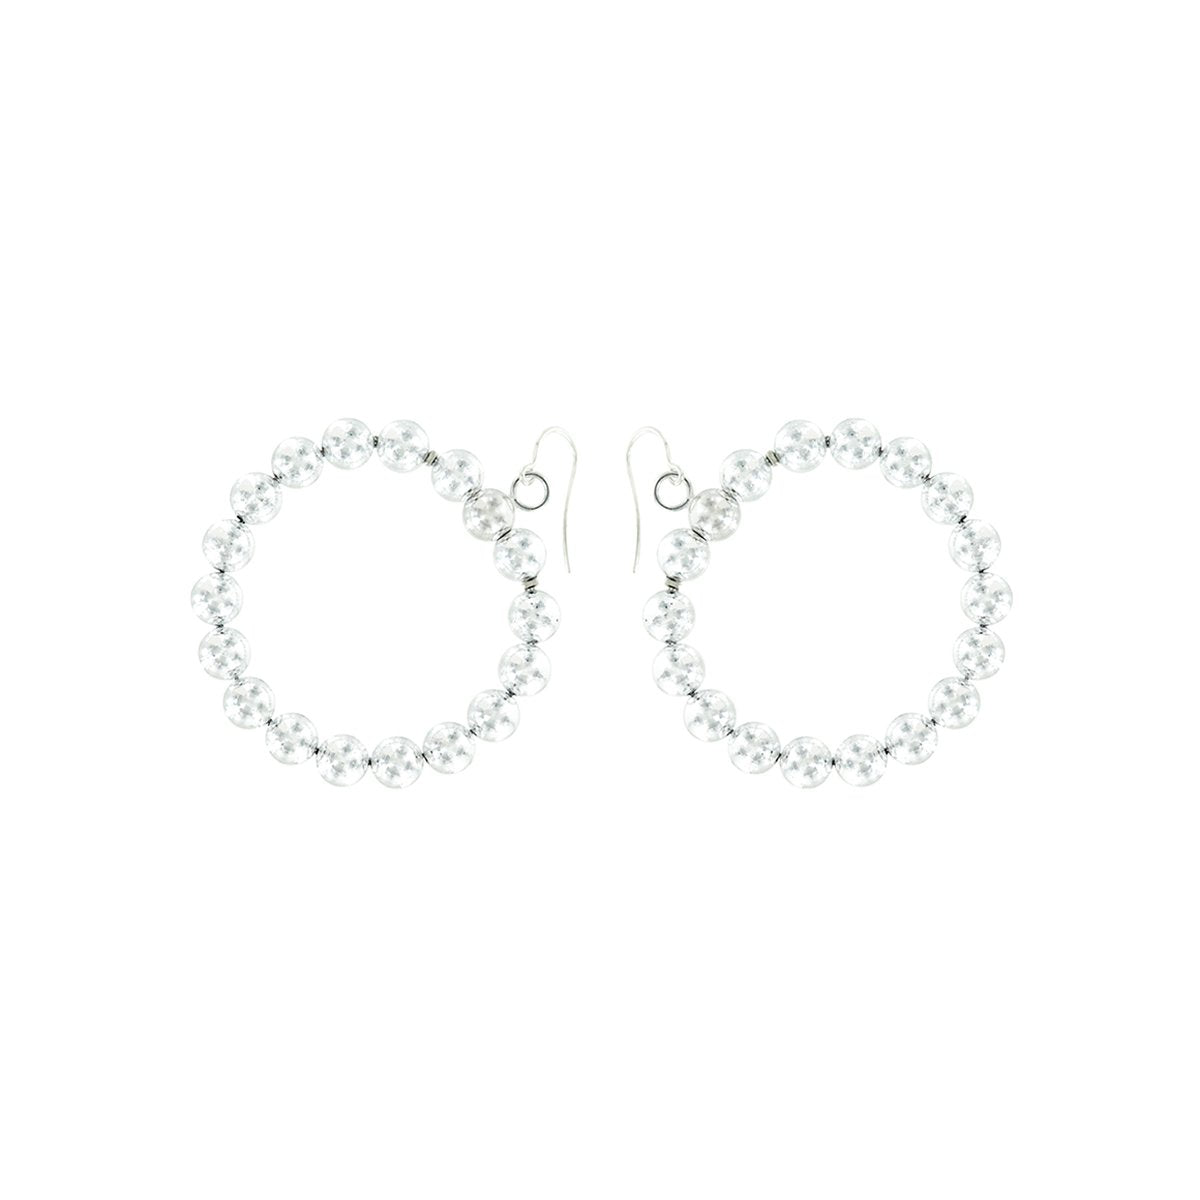 Säde earrings